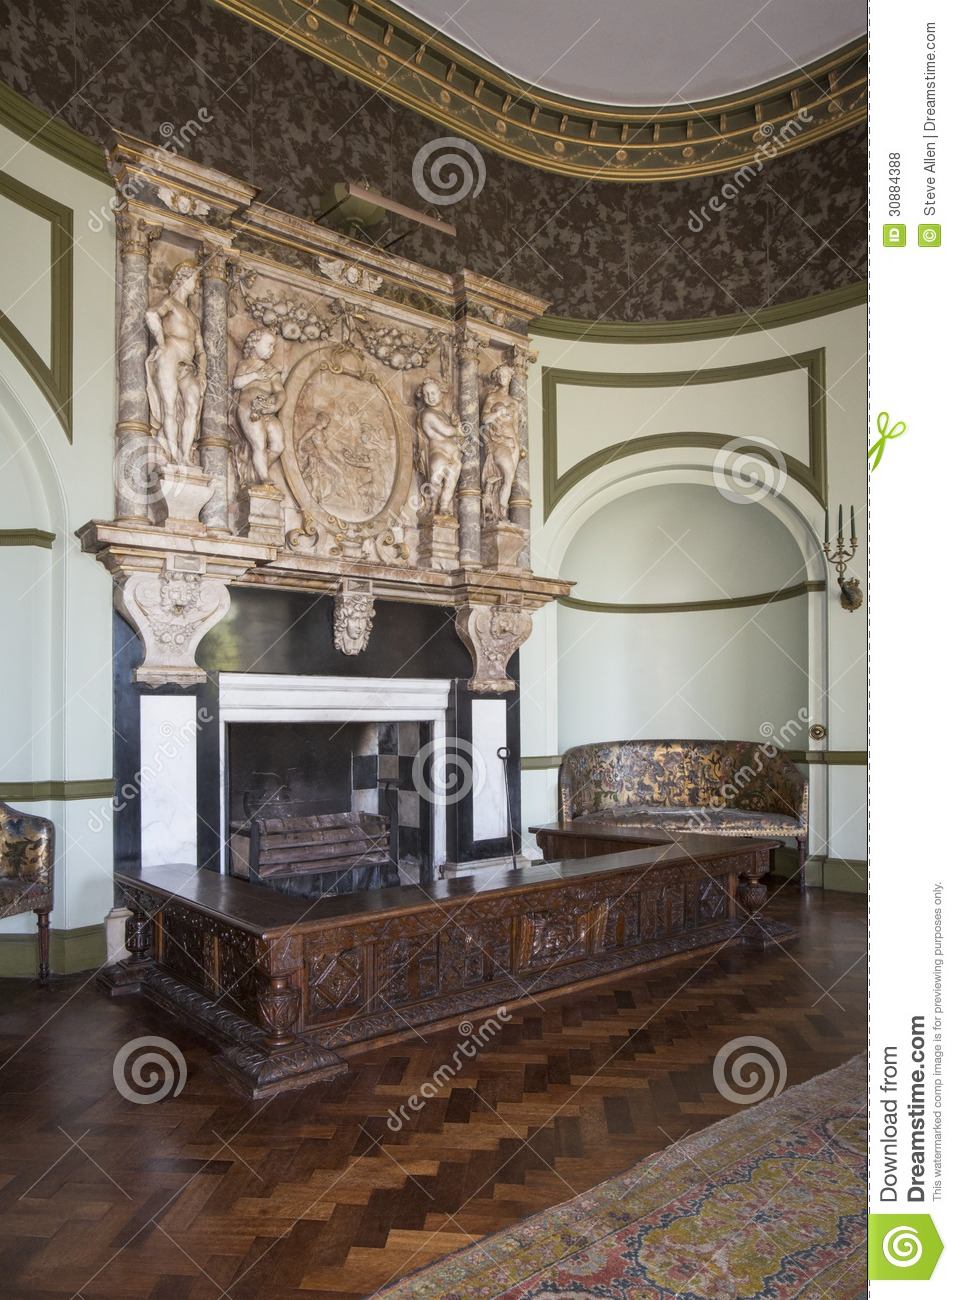 English Country Manor House - Interior Editorial Stock ...